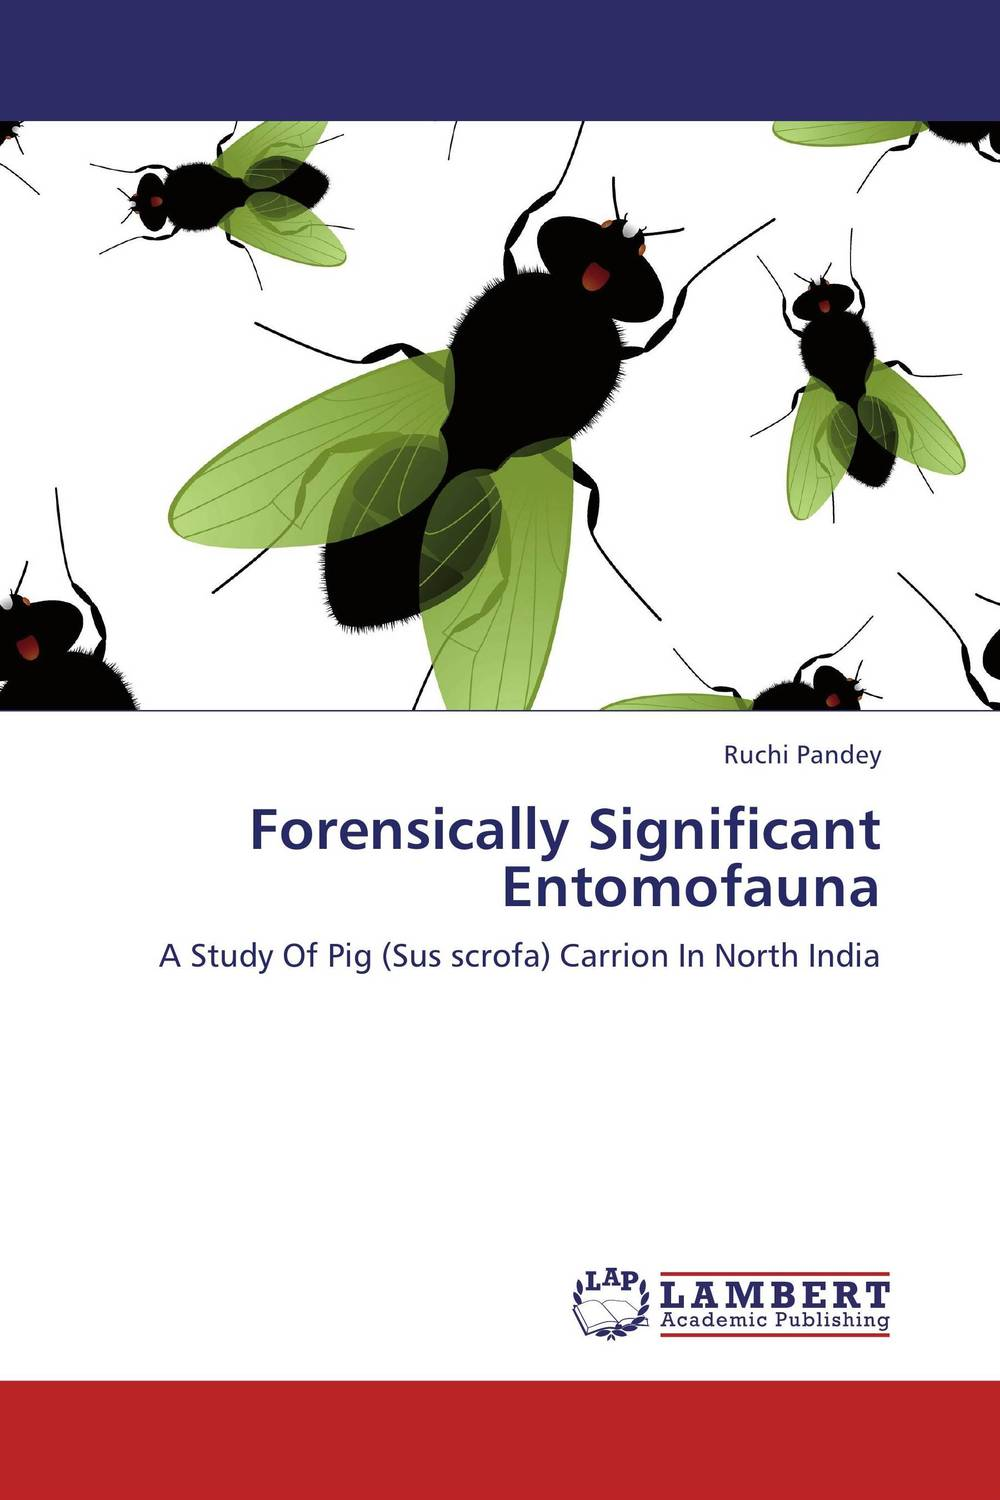 Forensically Significant Entomofauna psychiatric disorders in postpartum period